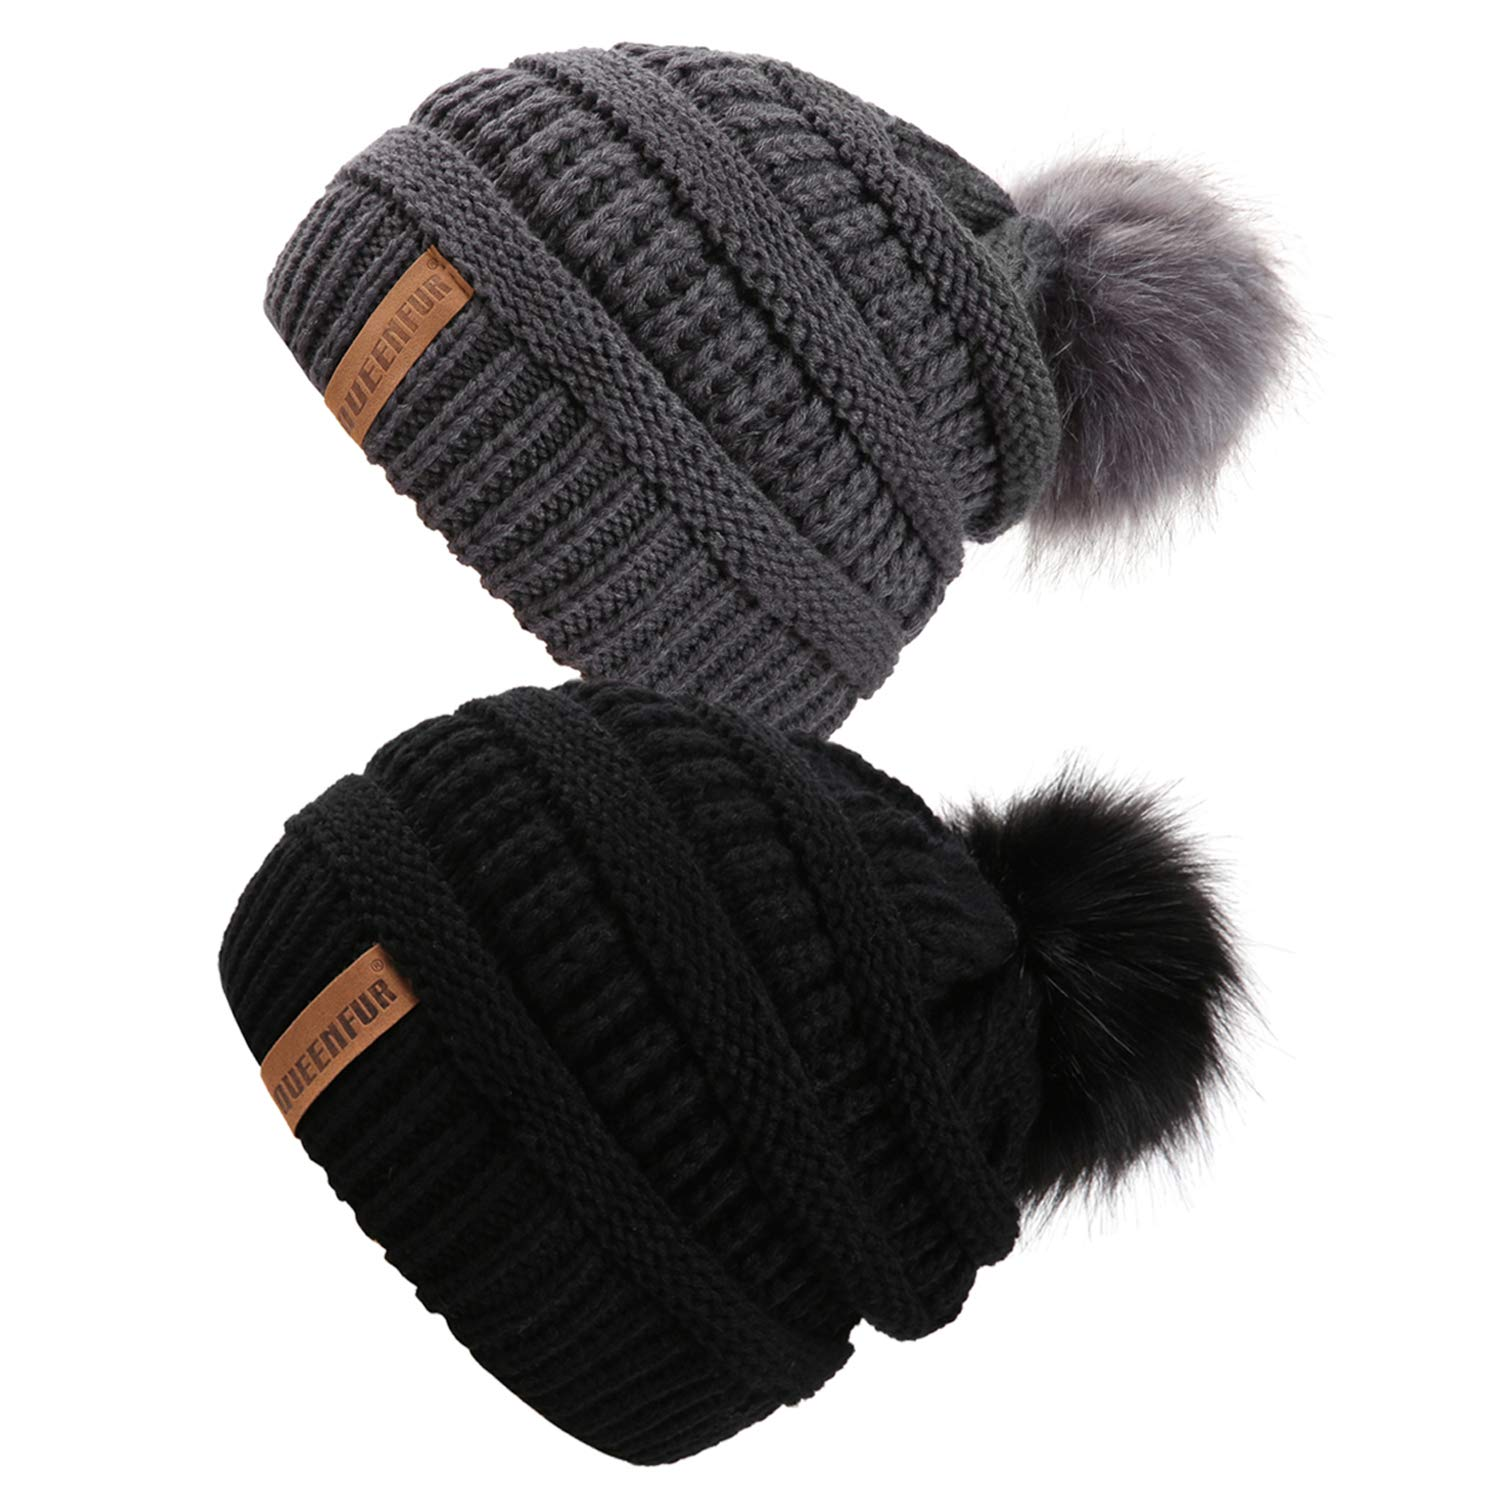 QUEENFUR Women Knit Slouchy Beanie Chunky Baggy Hat with Faux Fur Pompom Winter Soft Warm Ski Cap (2 Pcs Black/Dark Grey)